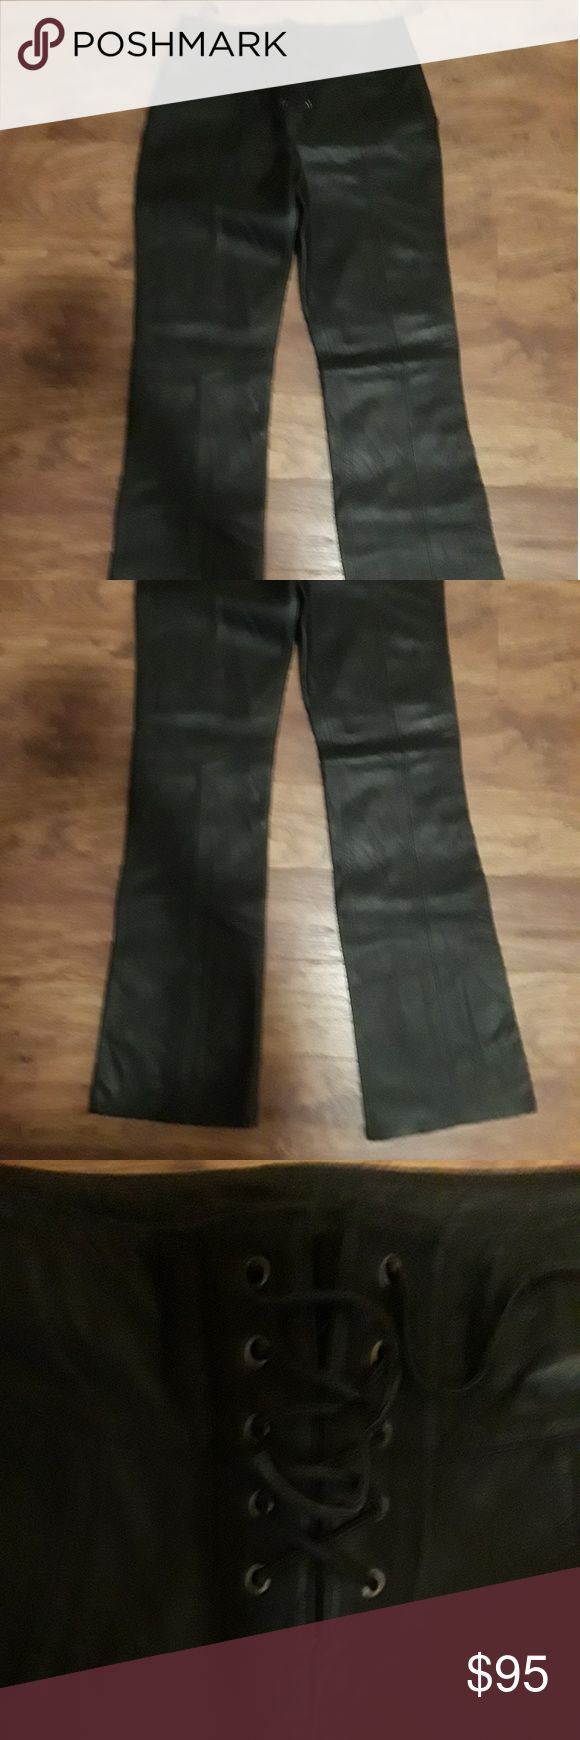 """Women's Wilson Maxims Lace up Riding Pants SZ 8 Great for motorcycle riding or dress, Like New 33"""" inseam Wilson Maxima Pants"""